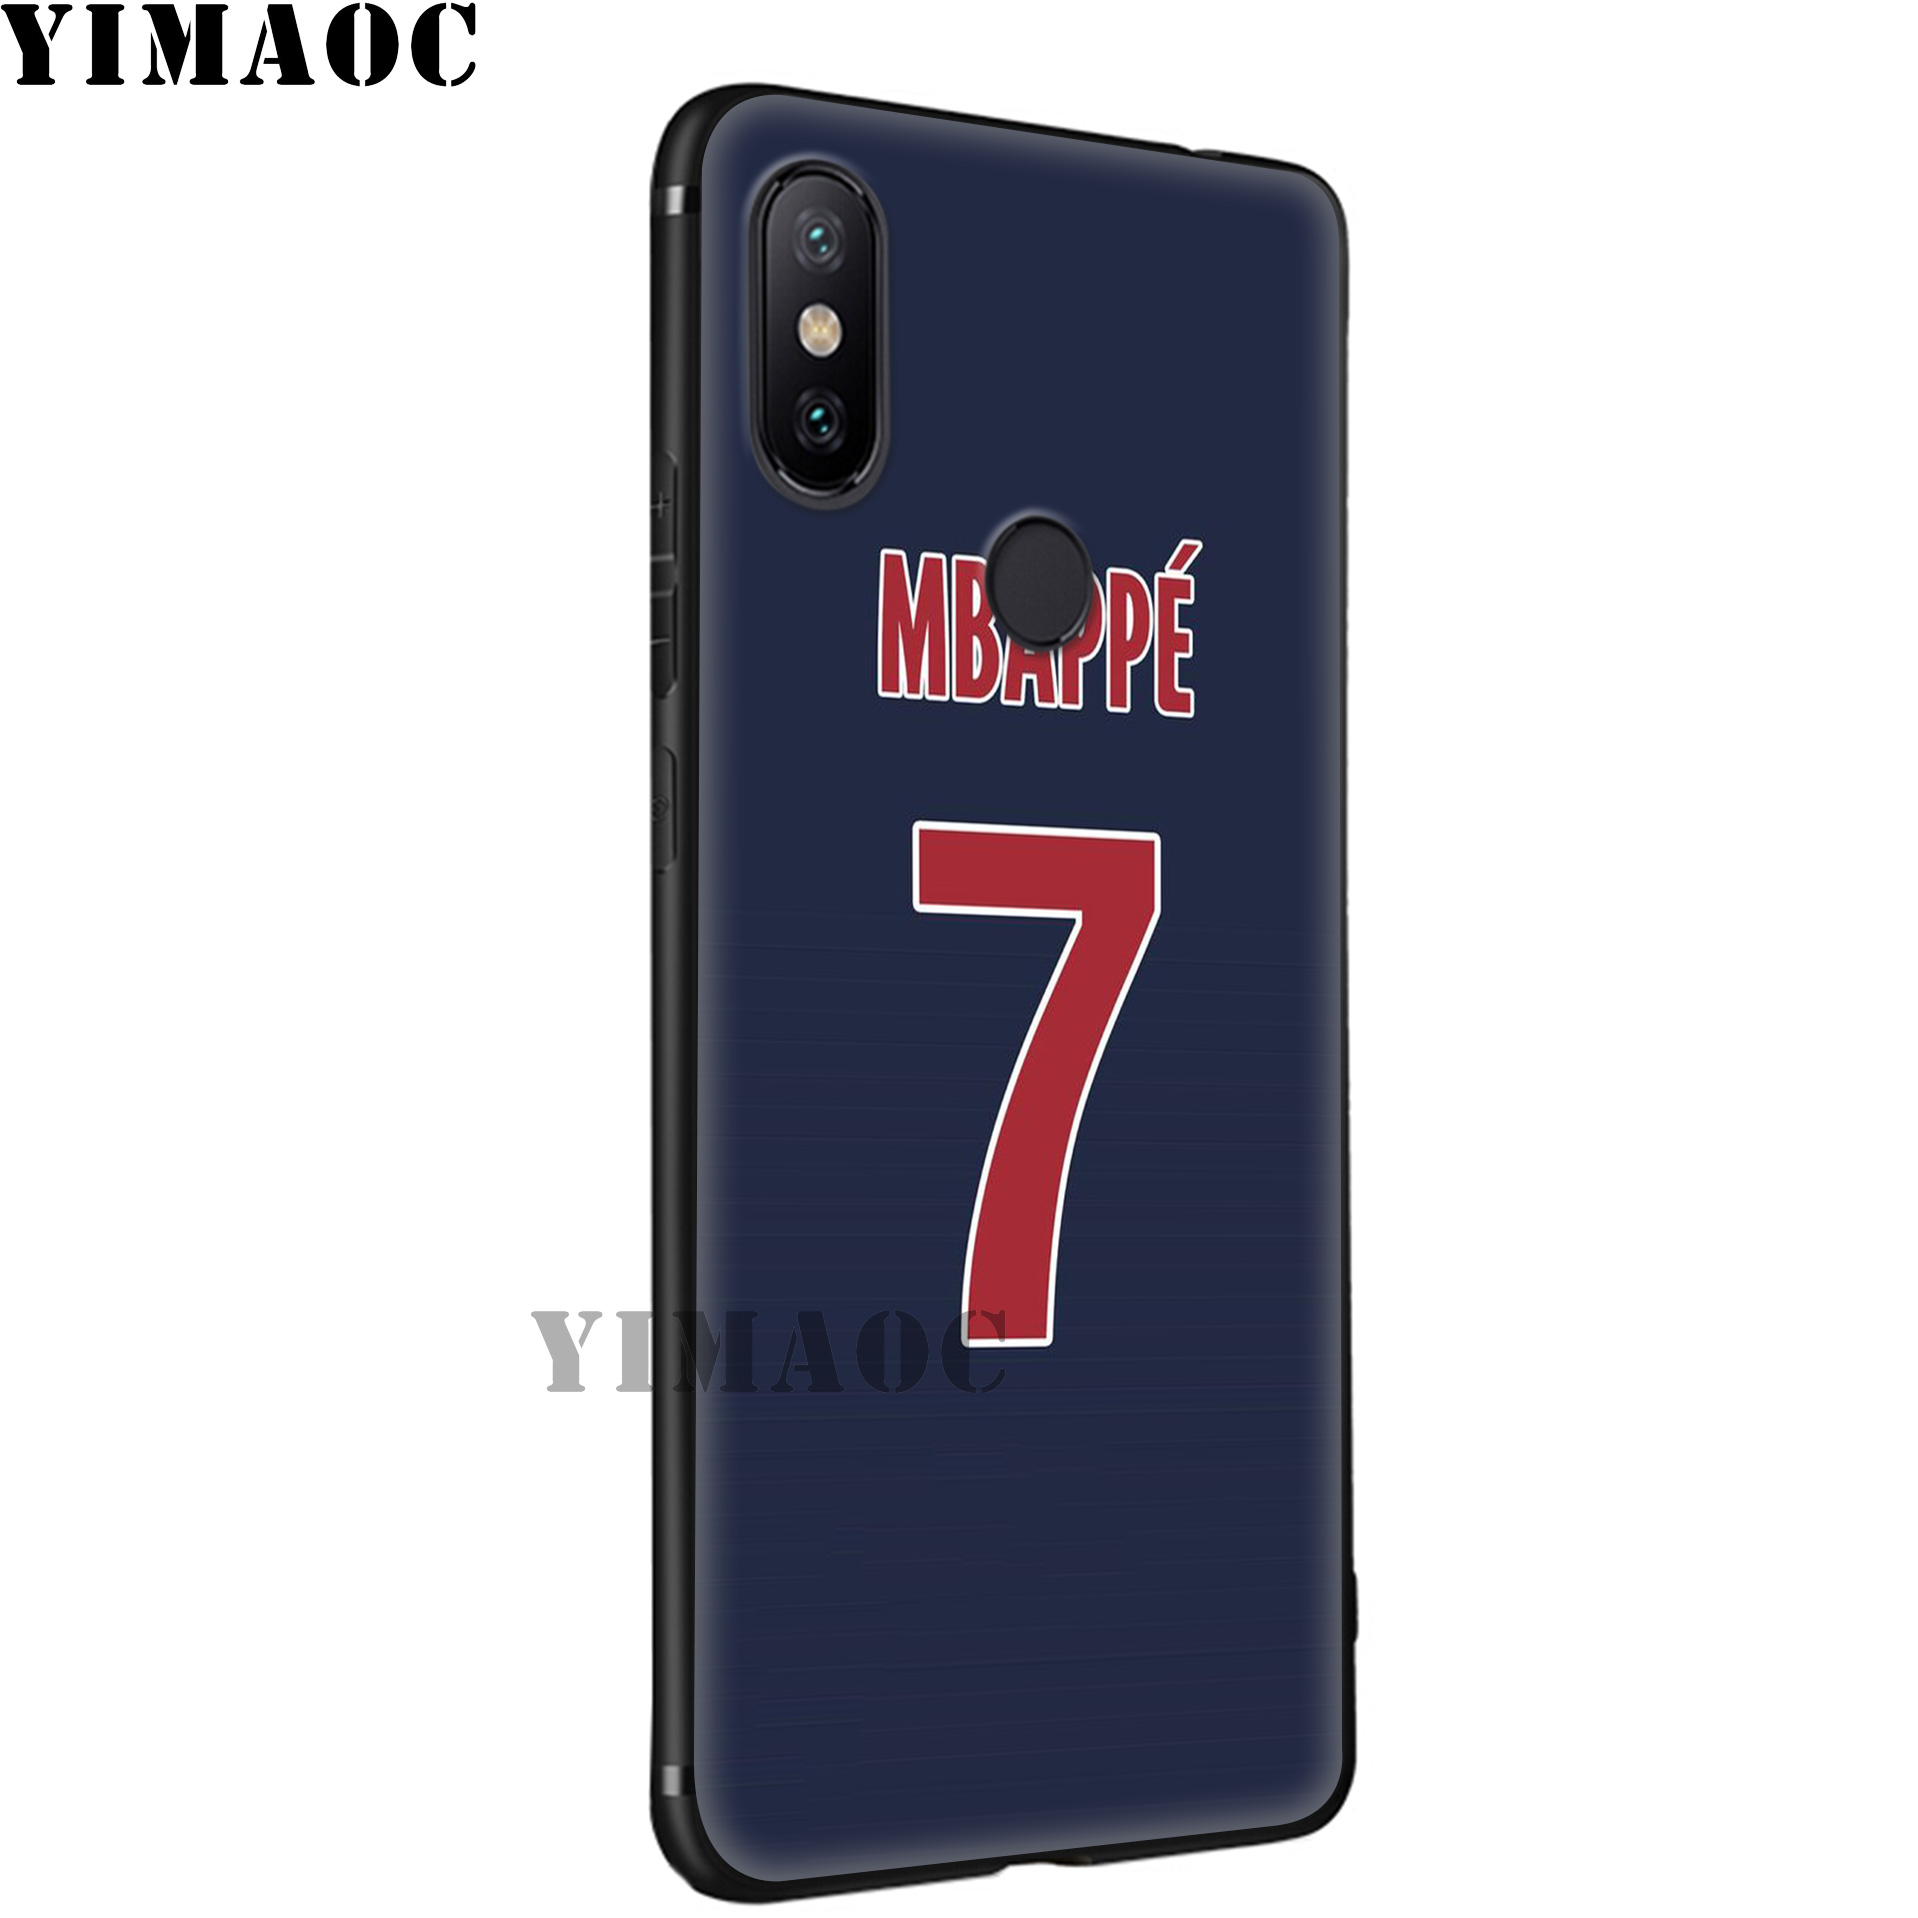 YIMAOC Mbappe football Pogba Soft Silicone Case for Xiaomi Redmi 7A Note 7 6 6A 5 4 4X 4A 5A 5 S2 Plus K20 Pro Lite in Fitted Cases from Cellphones Telecommunications